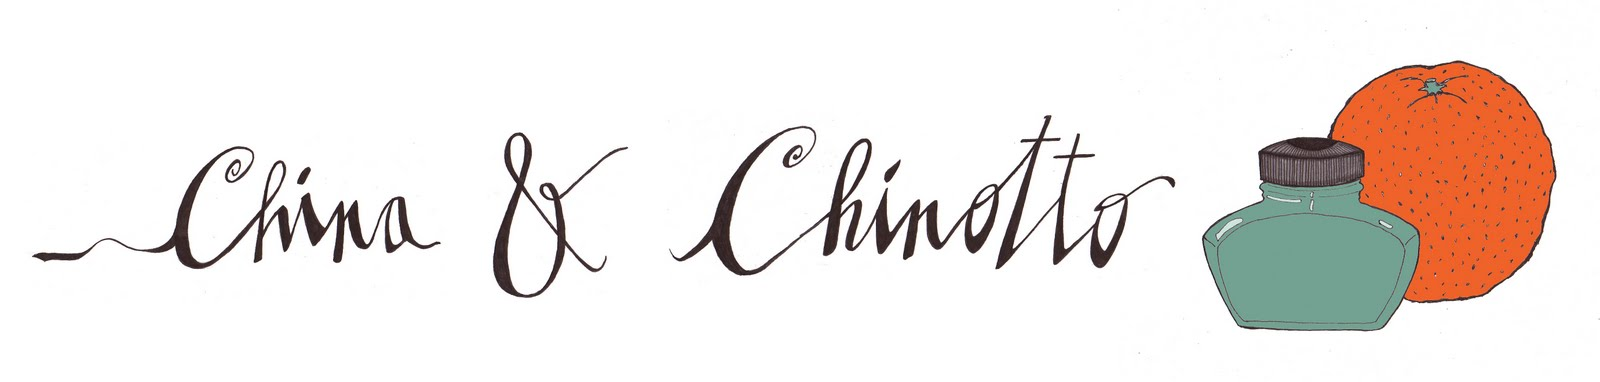 China e Chinotto